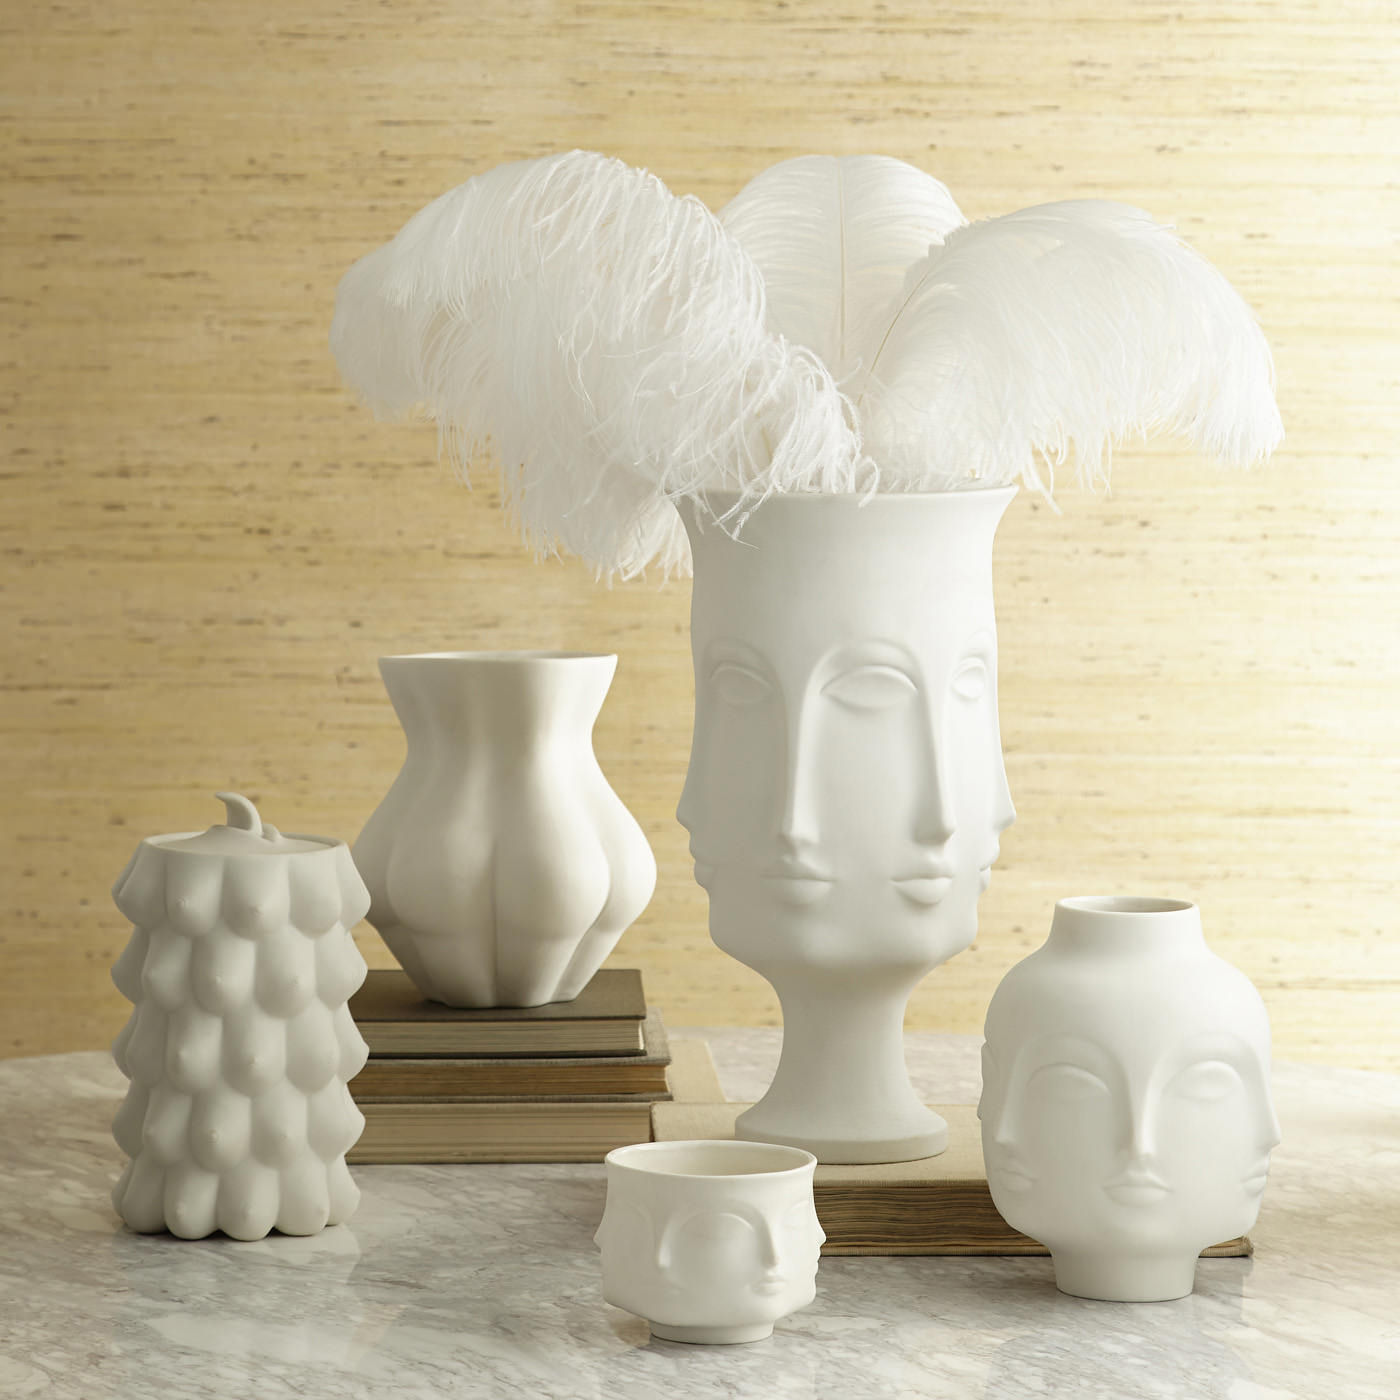 Groovy Dora Maar Vase White / Dora Maar by Jonathan Adler | Made In Design UK RM-12